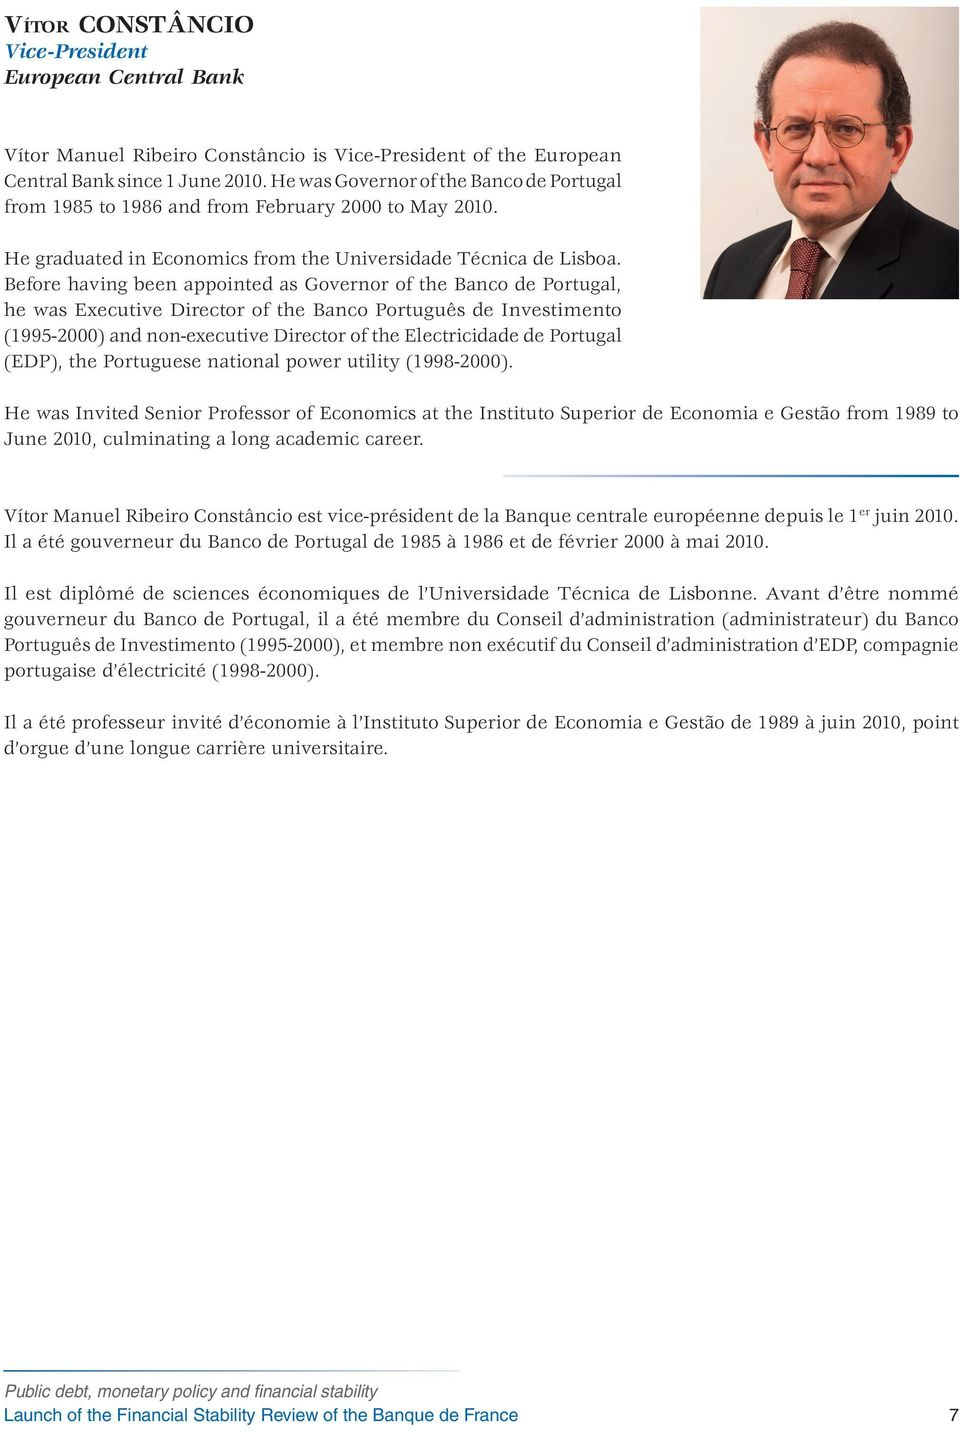 Before having been appointed as Governor of the Banco de Portugal, he was Executive Director of the Banco Português de Investimento (1995-2000) and non-executive Director of the Electricidade de